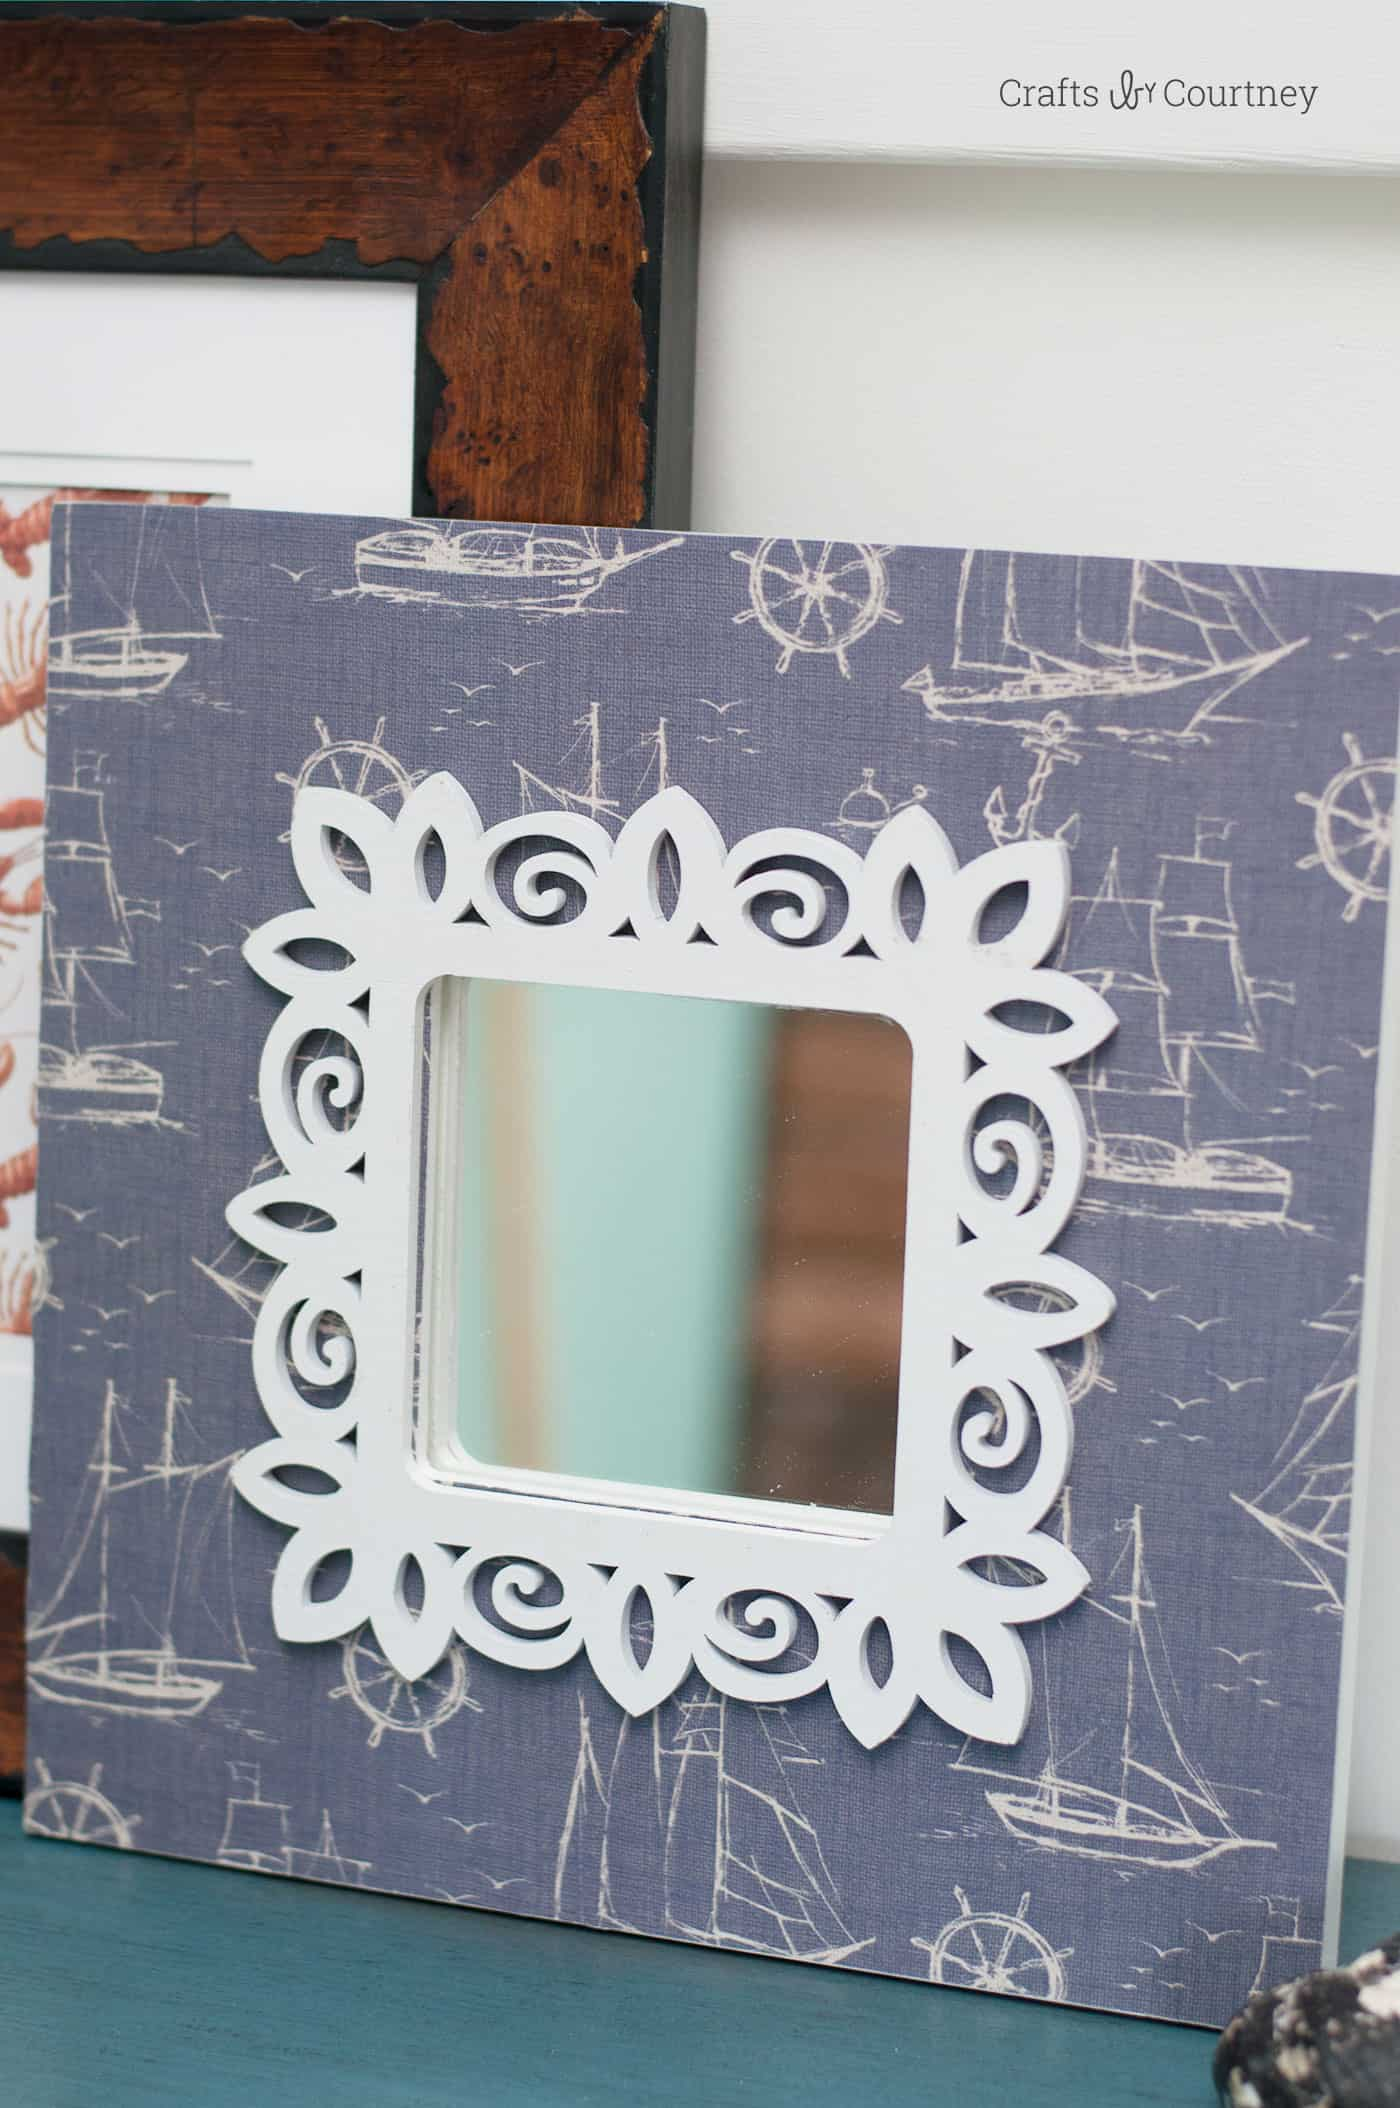 You can revamp a budget friendly IKEA frame using some basic craft supplies. It will look like a whole new (expensive) frame when you are done. So easy!